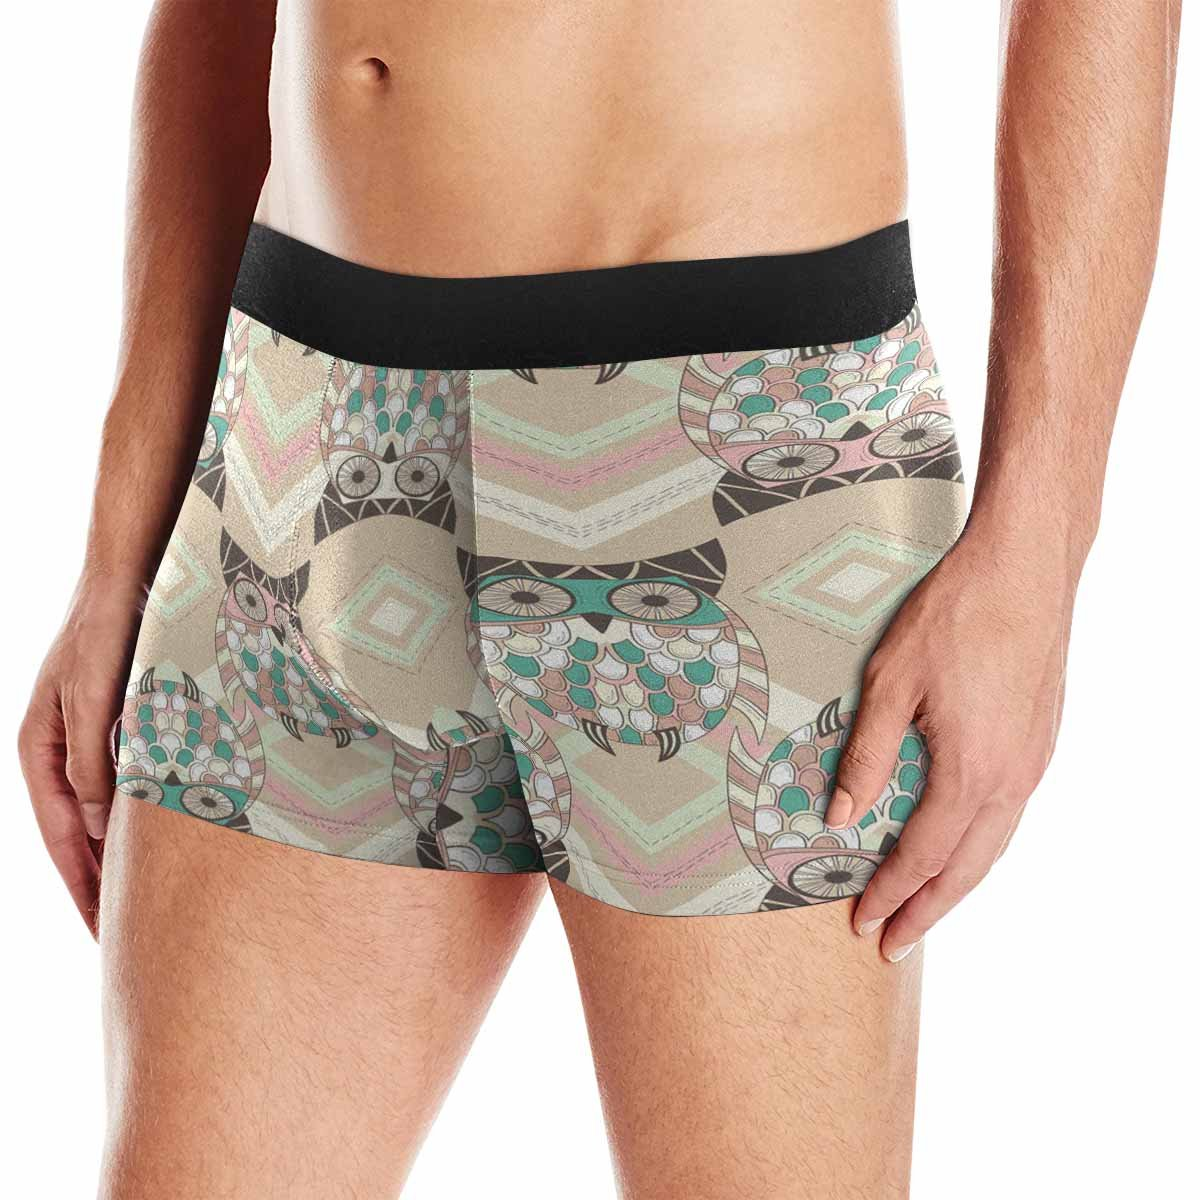 XS-3XL INTERESTPRINT Mens All-Over Print Boxer Briefs Cute Owl Pattern with Native Elements